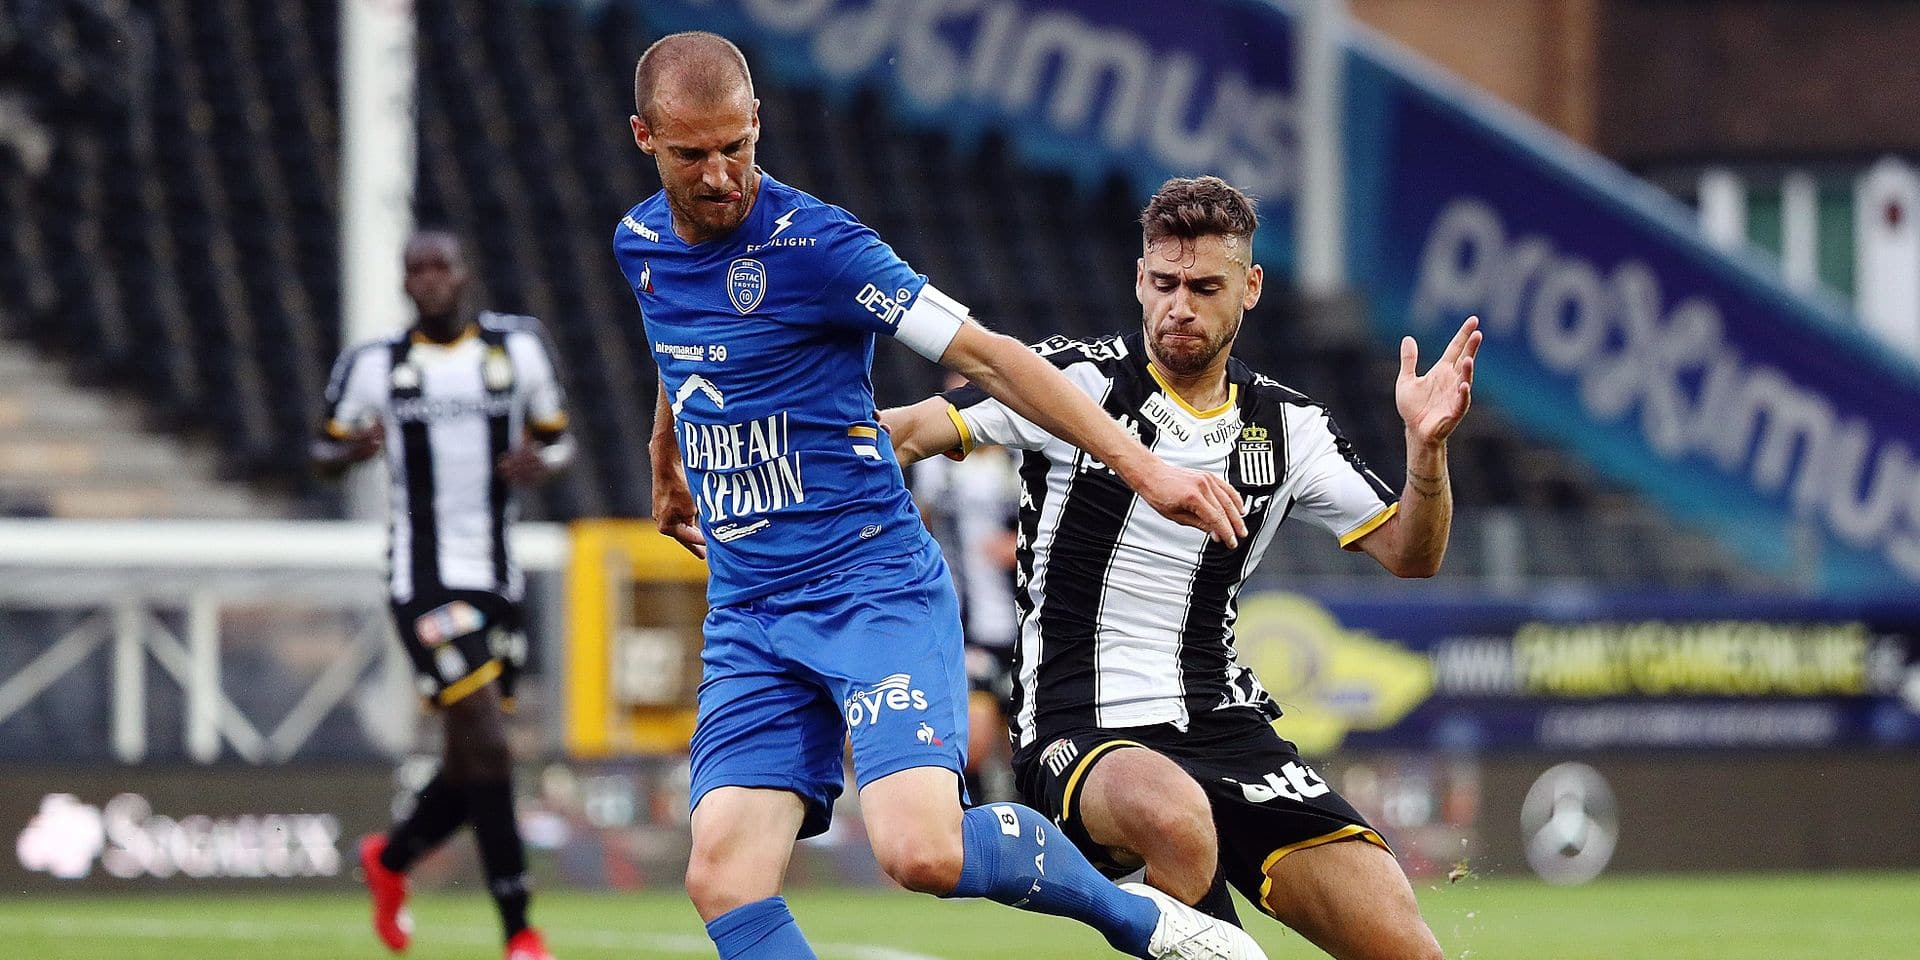 Charleroi's Massimo Bruno fights for the ball during a friendly soccer game between Belgian club Sporting Charleroi and French team Troyes AC, Friday 19 July 2019 in Charleroi, in preparation of the upcoming 2019-2020 Jupiler Pro League season. BELGA PHOTO VIRGINIE LEFOUR